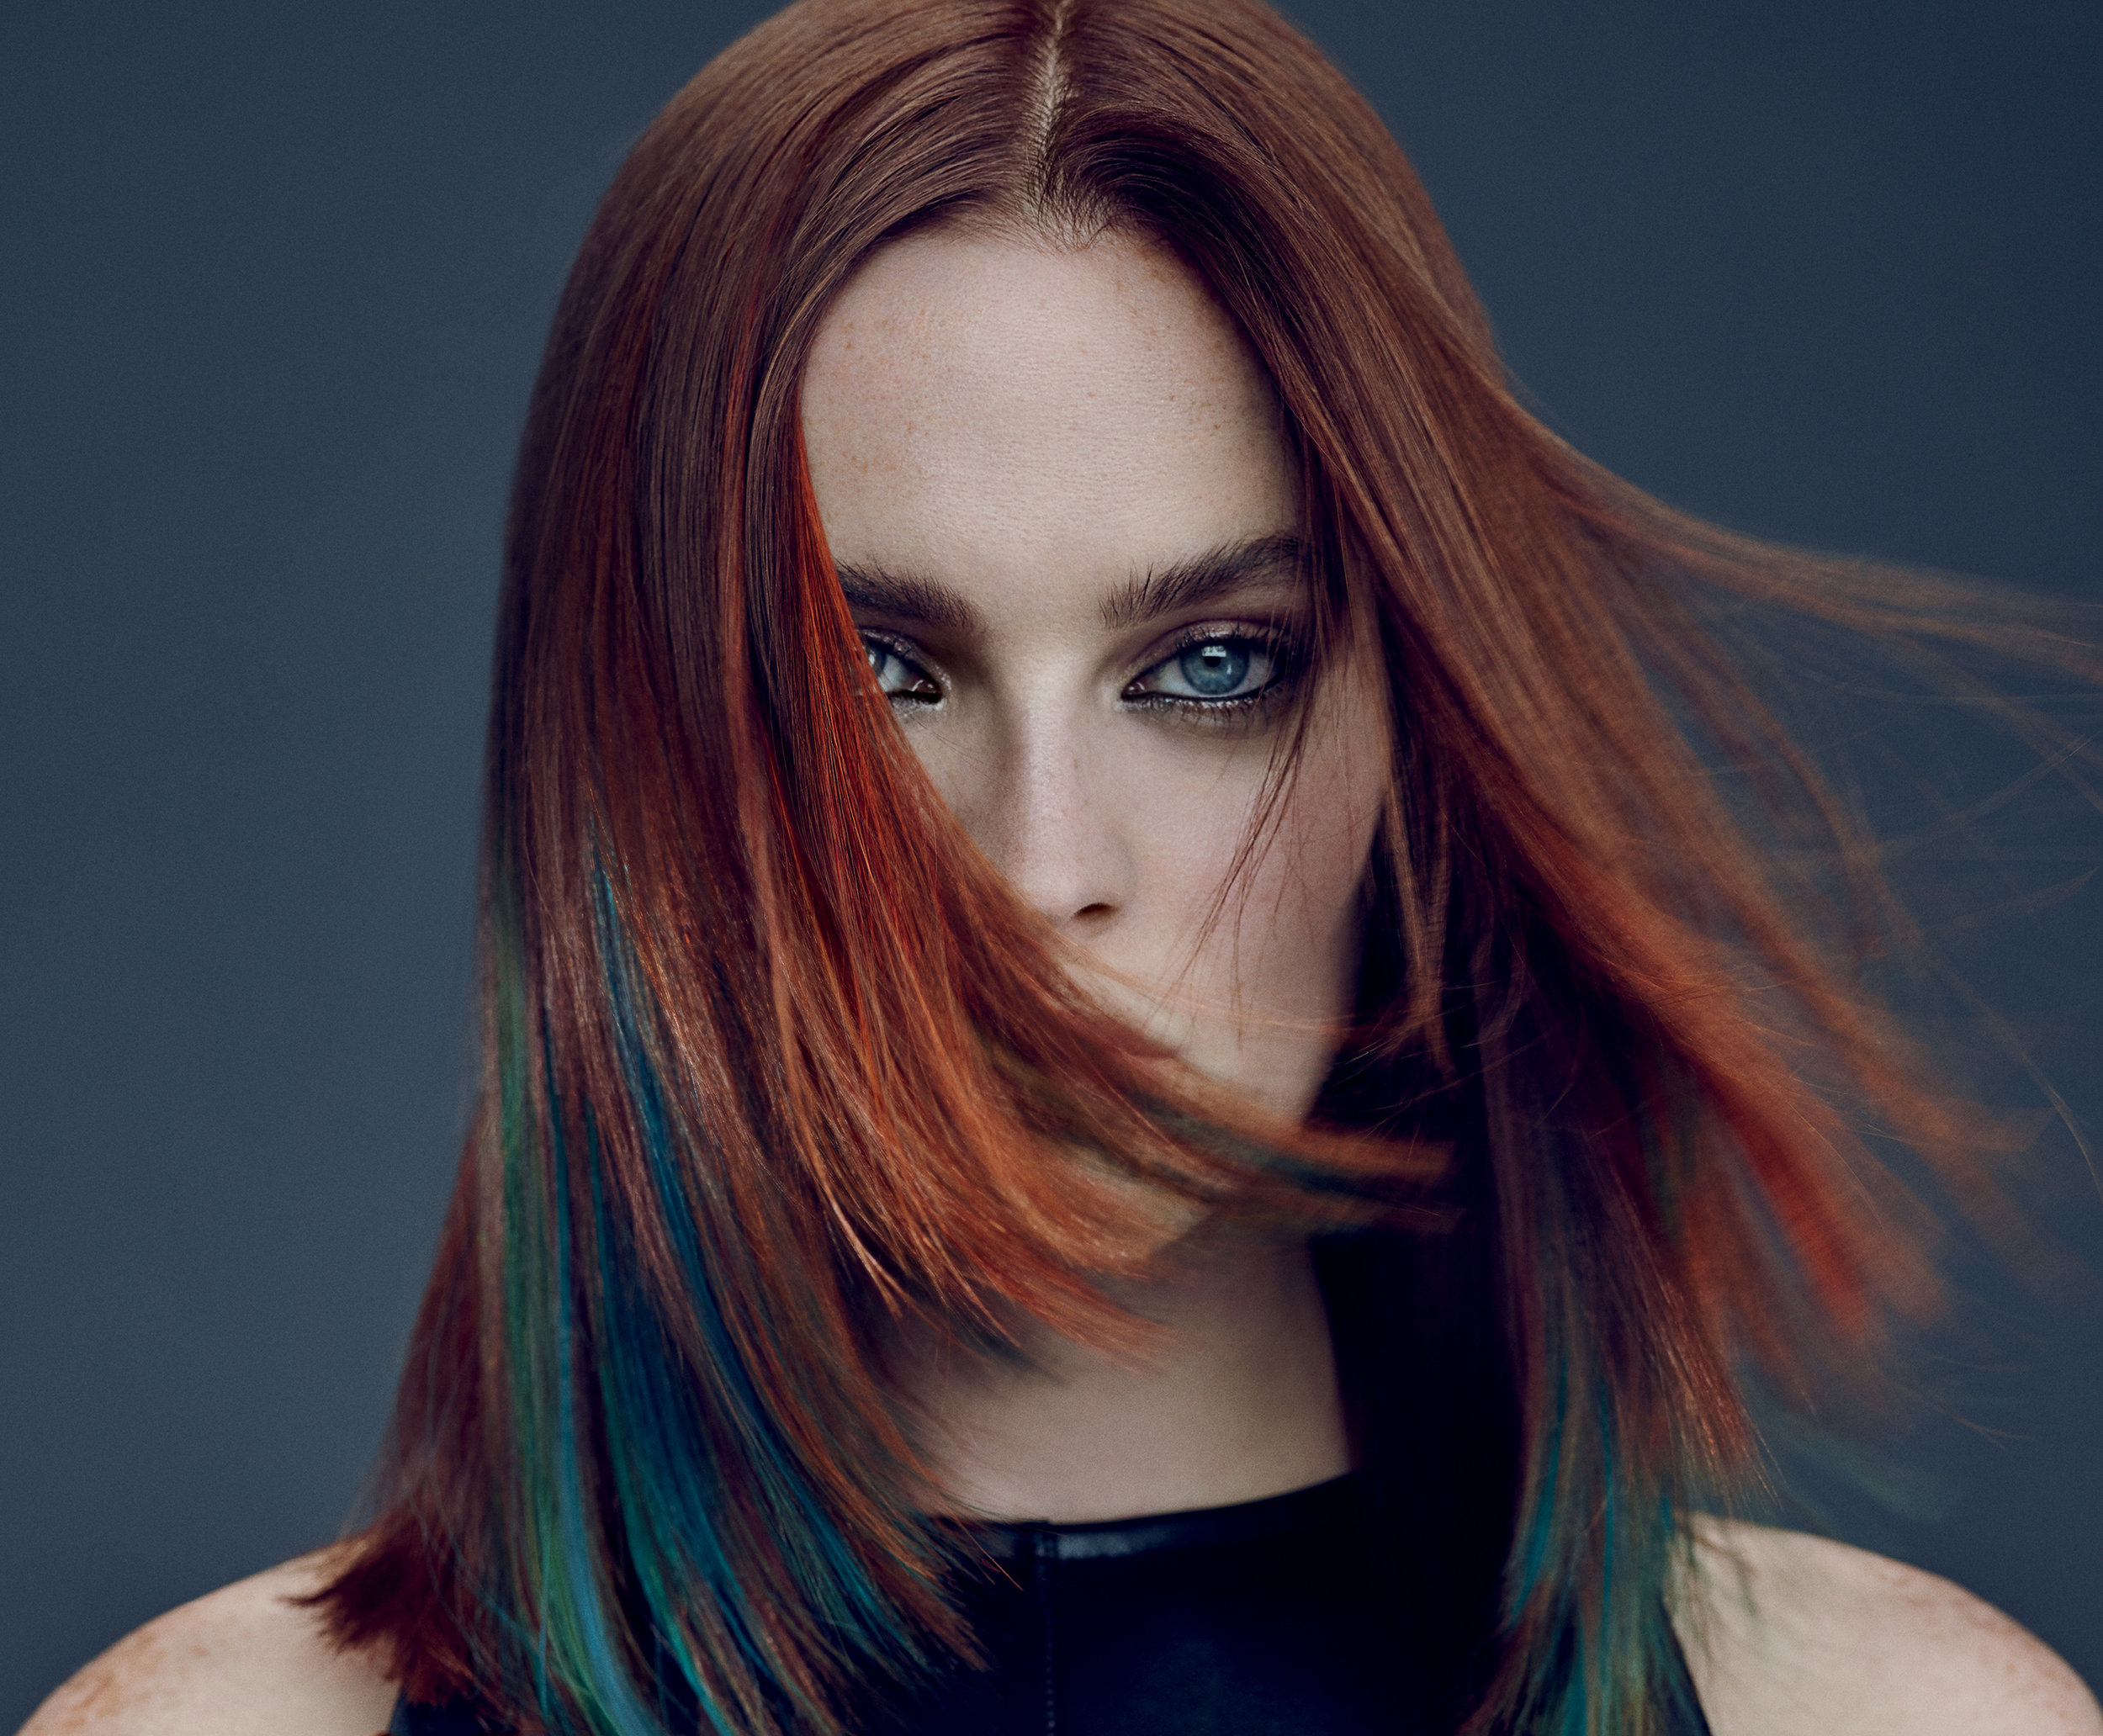 Colour Special - Combination Colour - $235Tint regrowth, up to 15 foils, semi-permanent inbetween or after foils, shampoo, haircut and blowdry (short to medium hair length, add $20 for long hair)